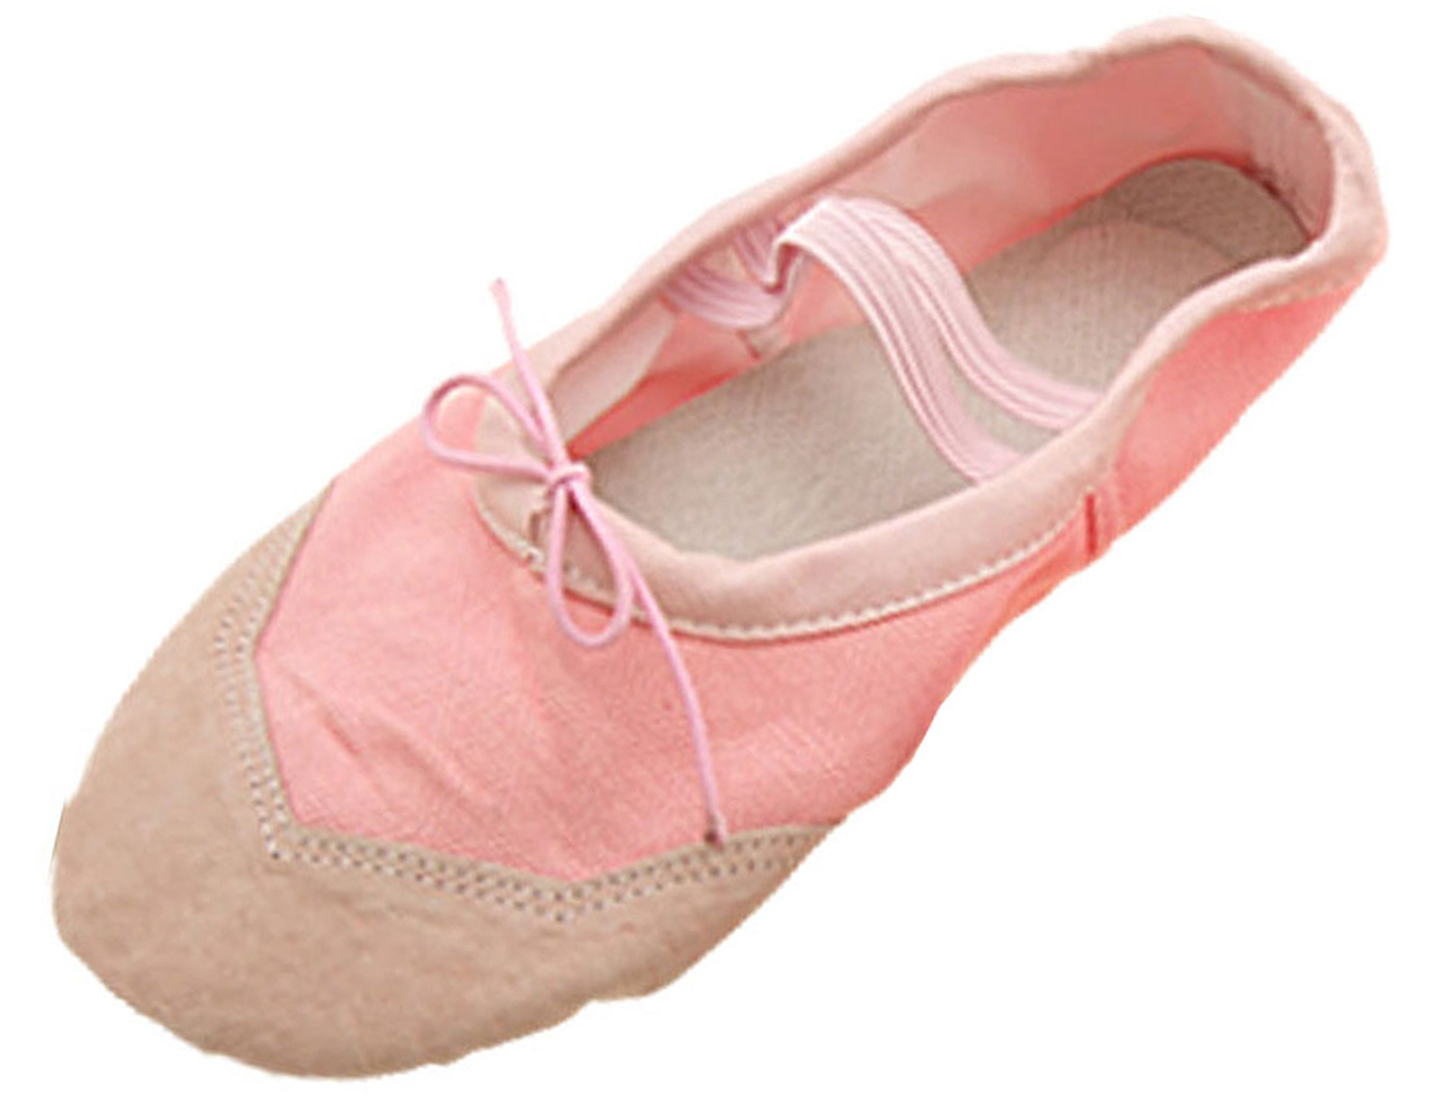 Girls Ballet Dance Dancing Soft Sole Pink Shoes Size 5